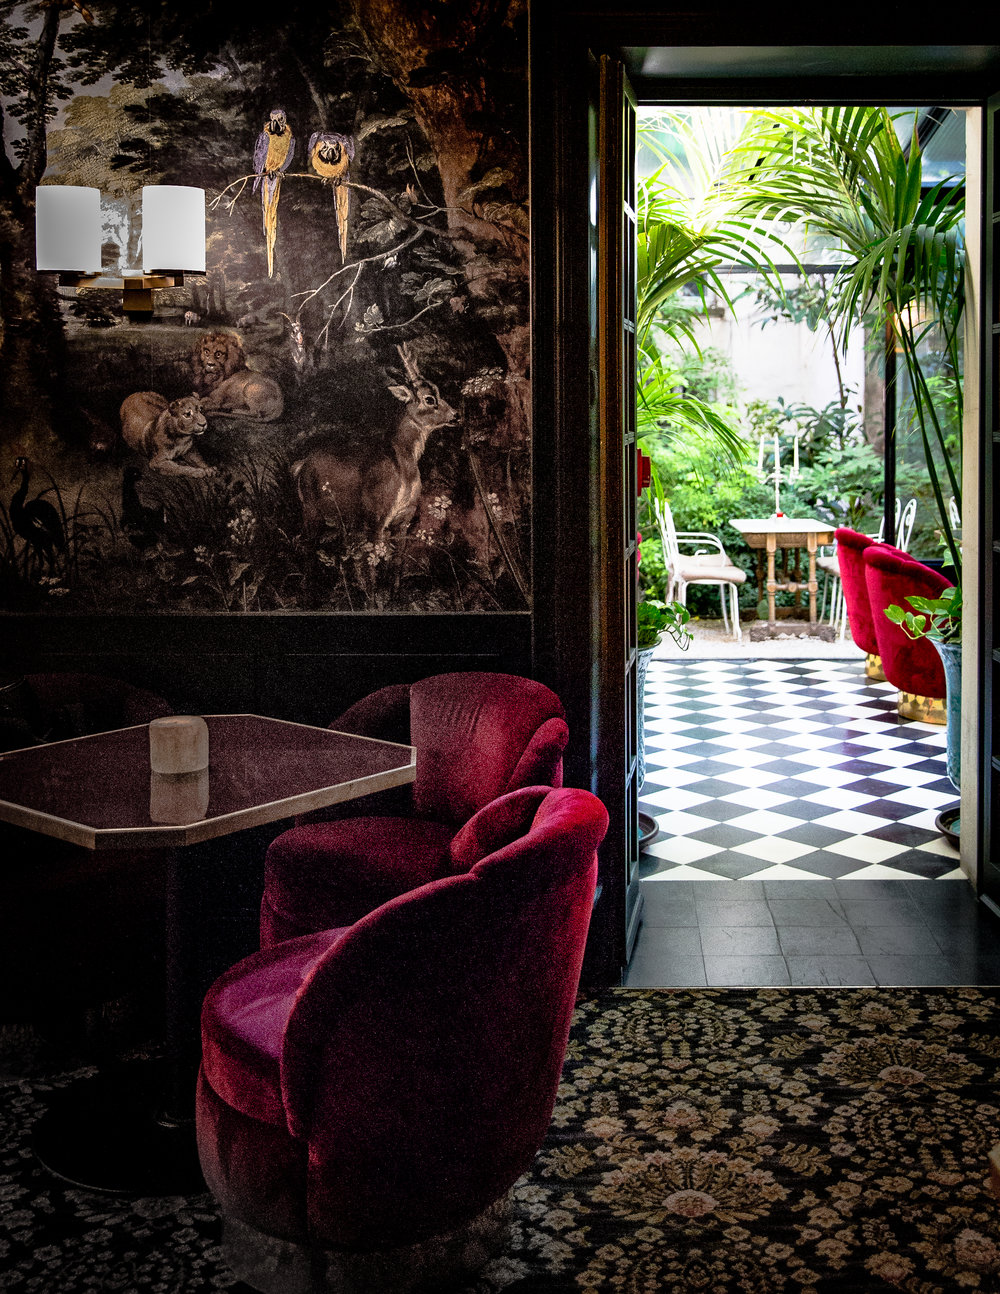 HOTEL PARTICULIER MONTMARTRE   23 Avenue Junot, Pavillon D, 75018   INSIDER TIP  | David Lynchian in vibe and secluded from the motion of the city, you'd hardly know that Le Très Particulier Montmartre is part of a hotel. Locals come for creative cocktails, cozy corners and an intimate setting, the perfect backdrop for drinks until the wee hours.